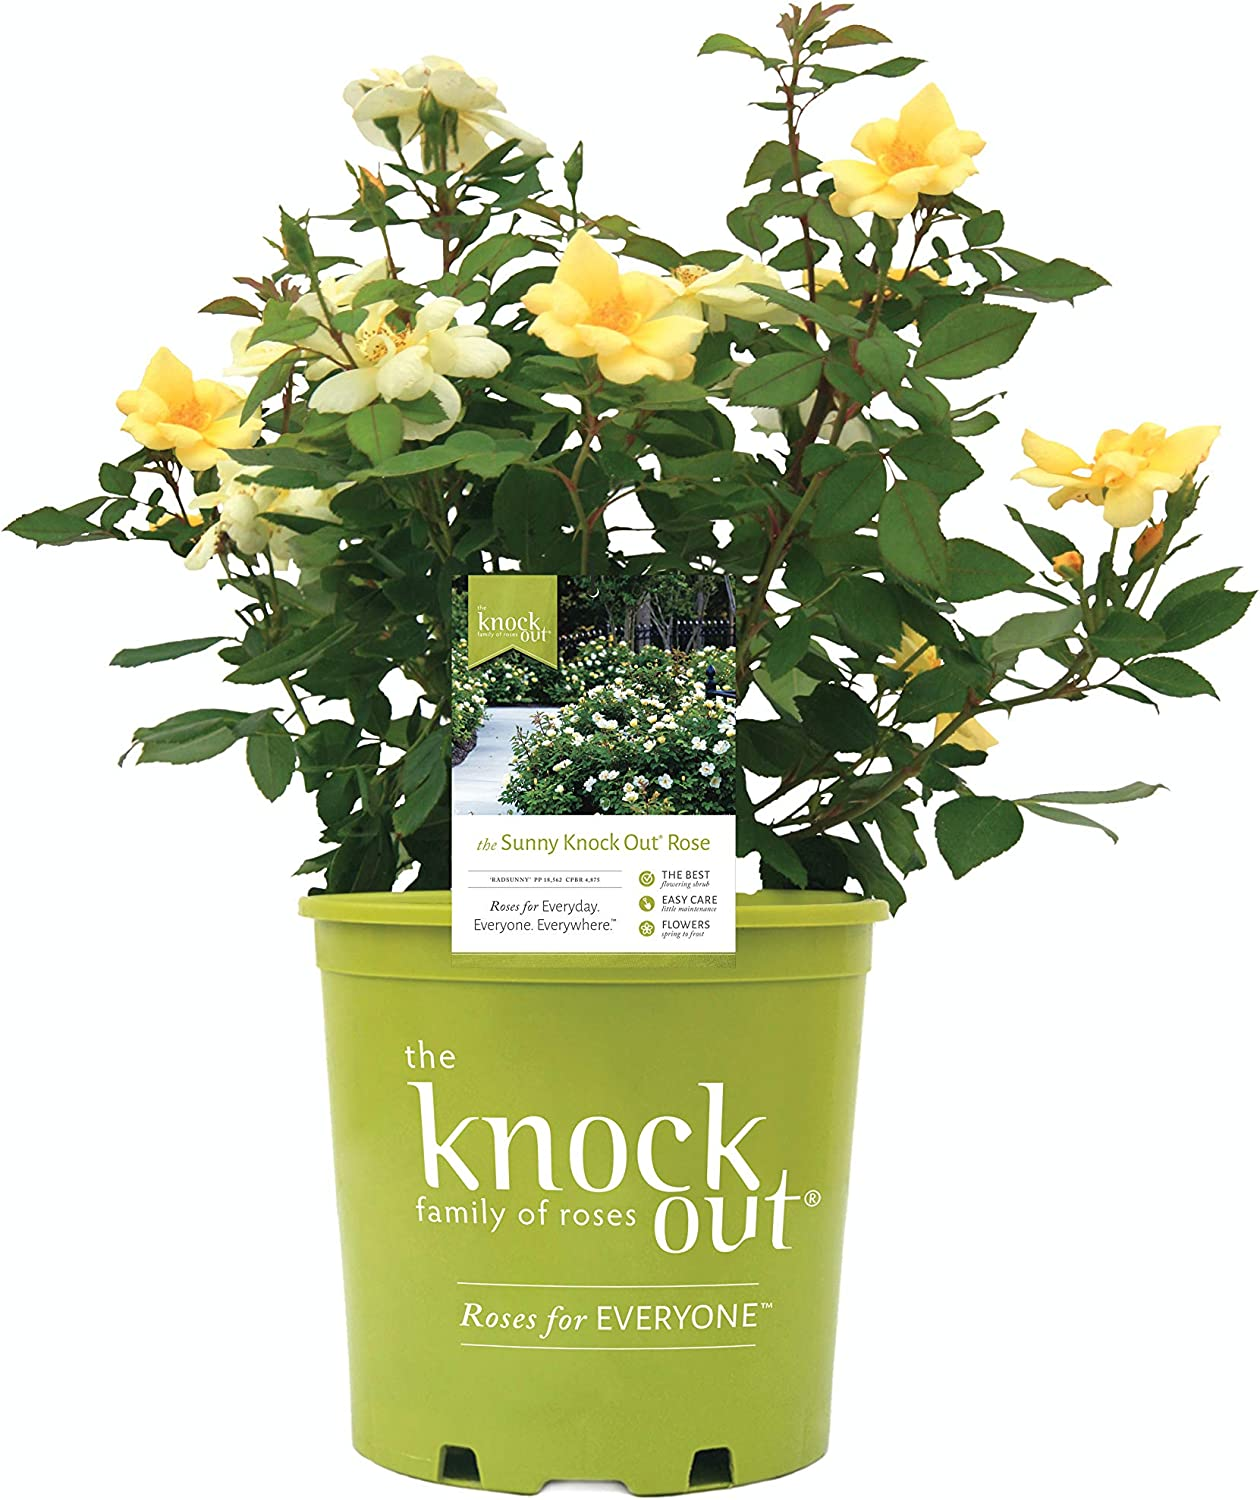 Star Max 84% Genuine OFF Roses Knockout Series 11892 Rose Sunny Gallon 3